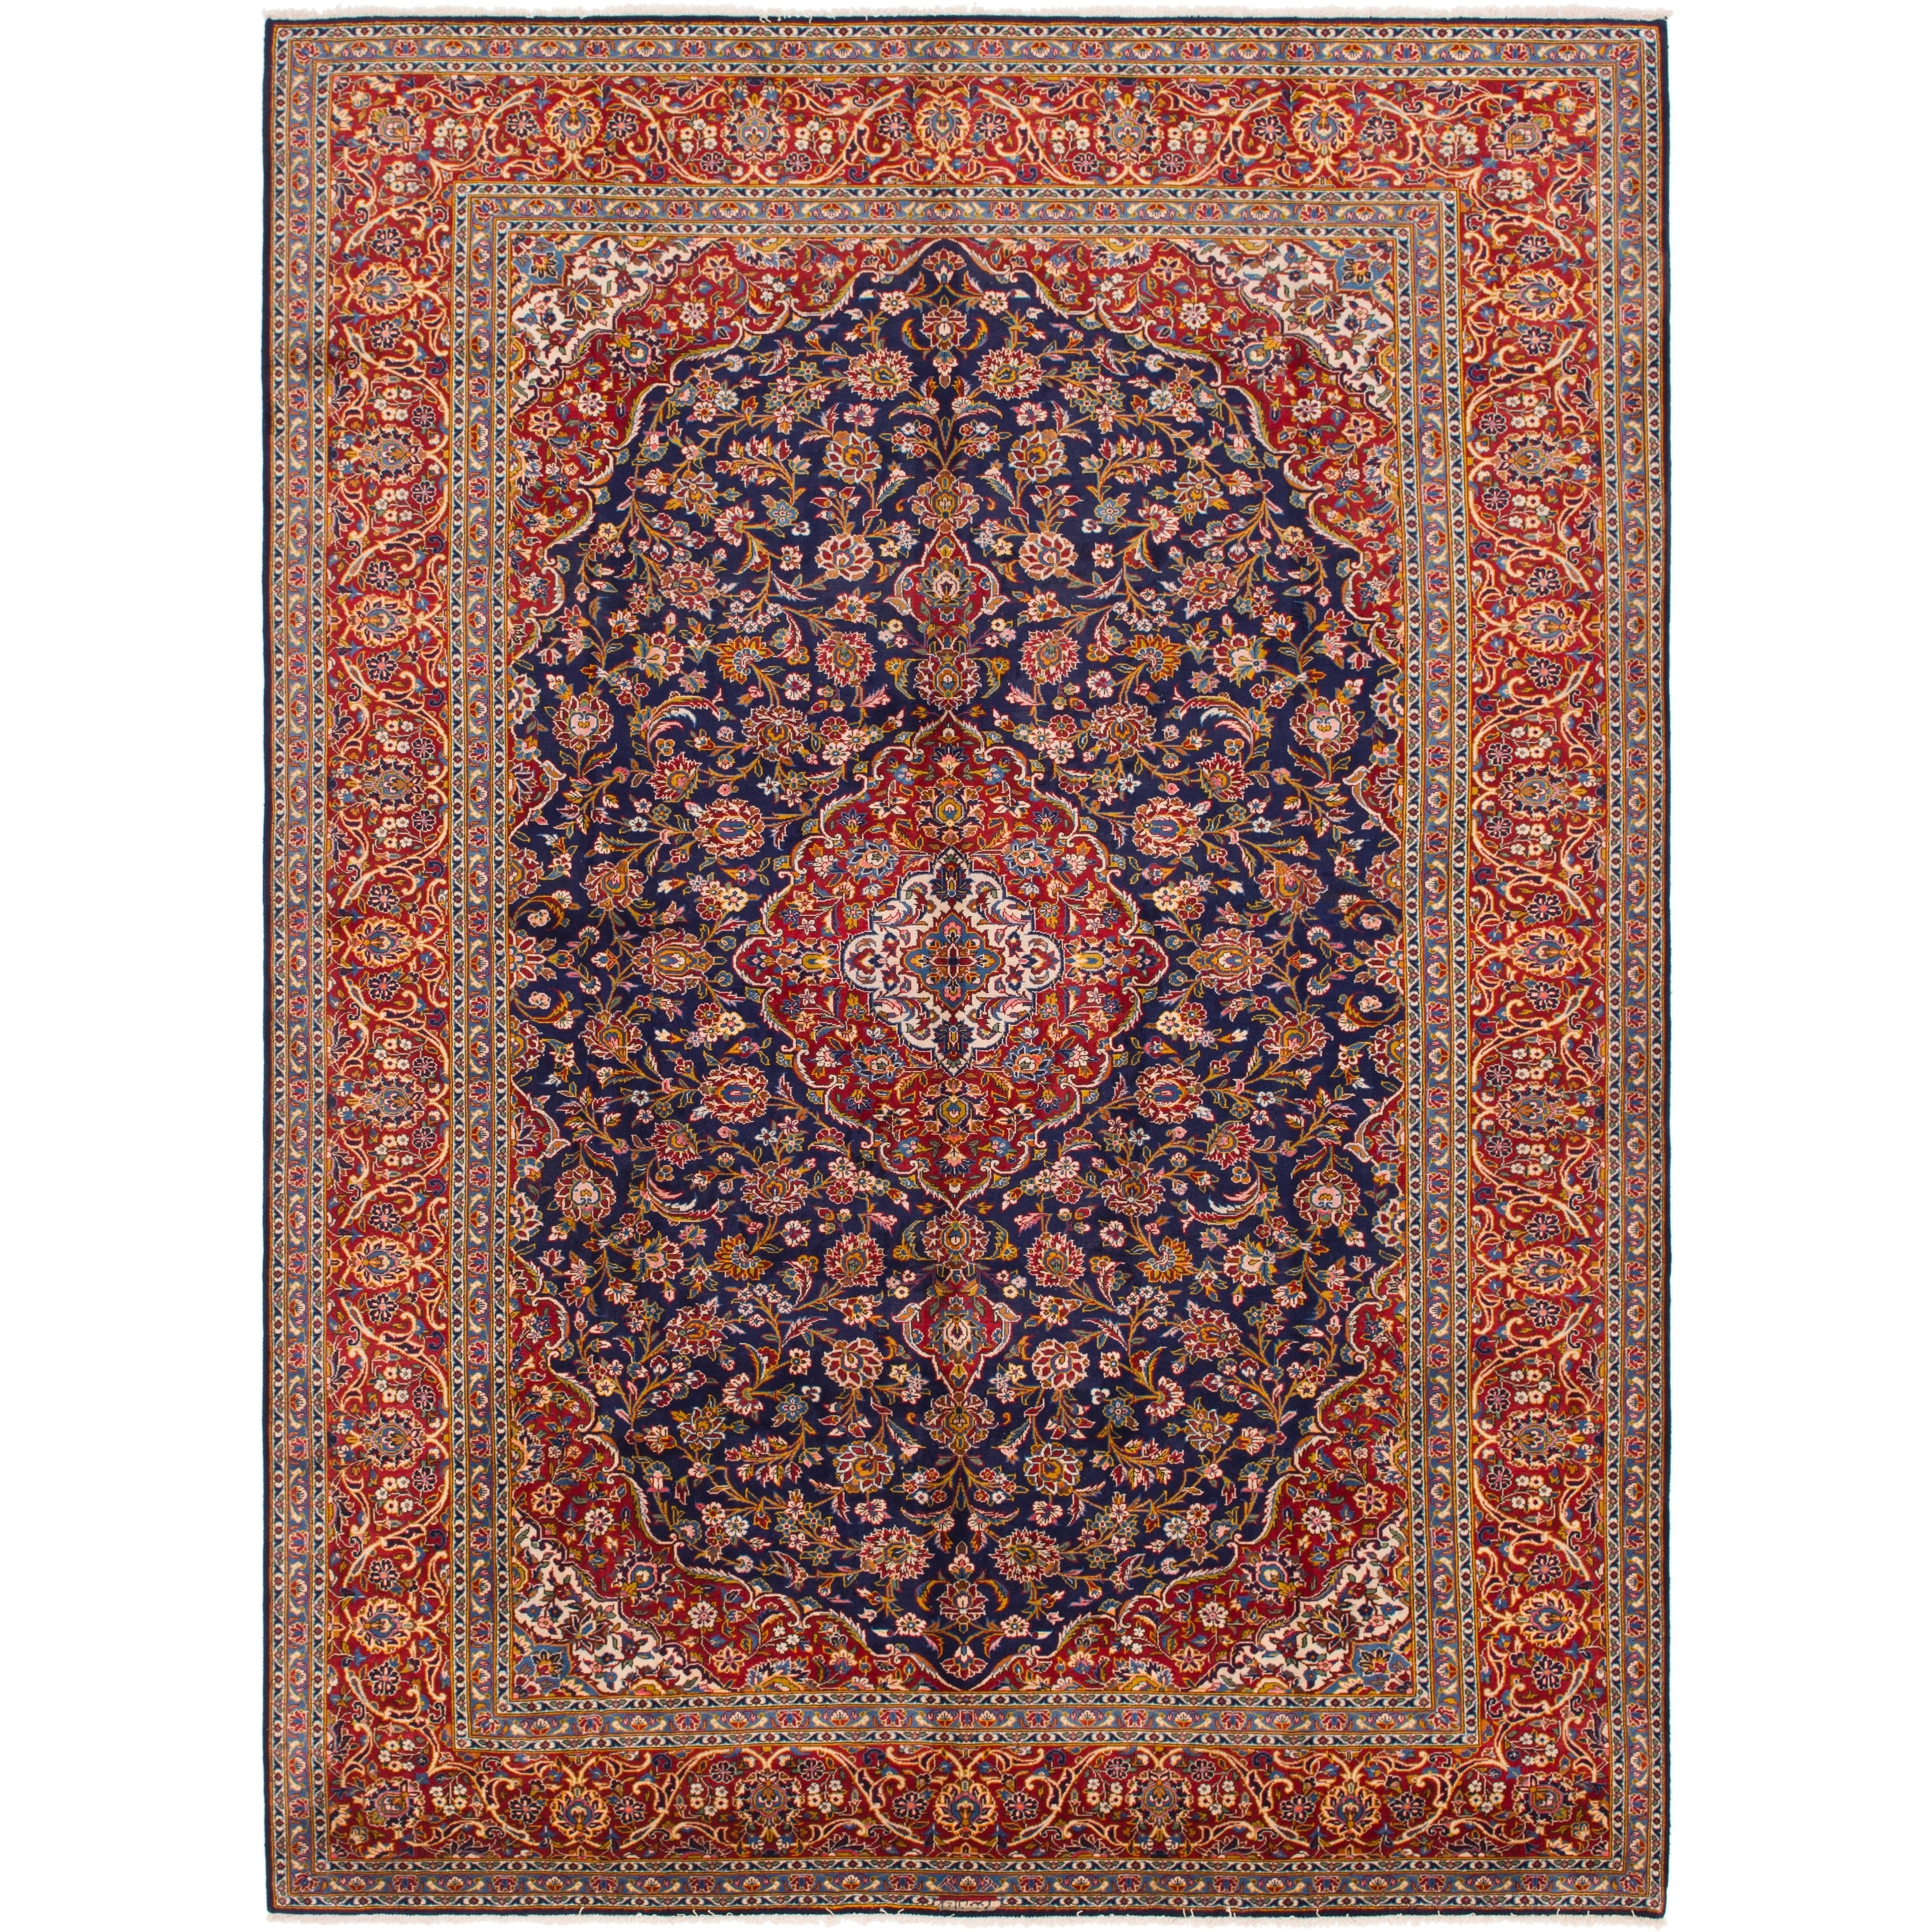 Hand Knotted Kashan Semi Antique Wool Area Rug - 9 10 x 13 4 (Navy blue - 9 10 x 13 4)